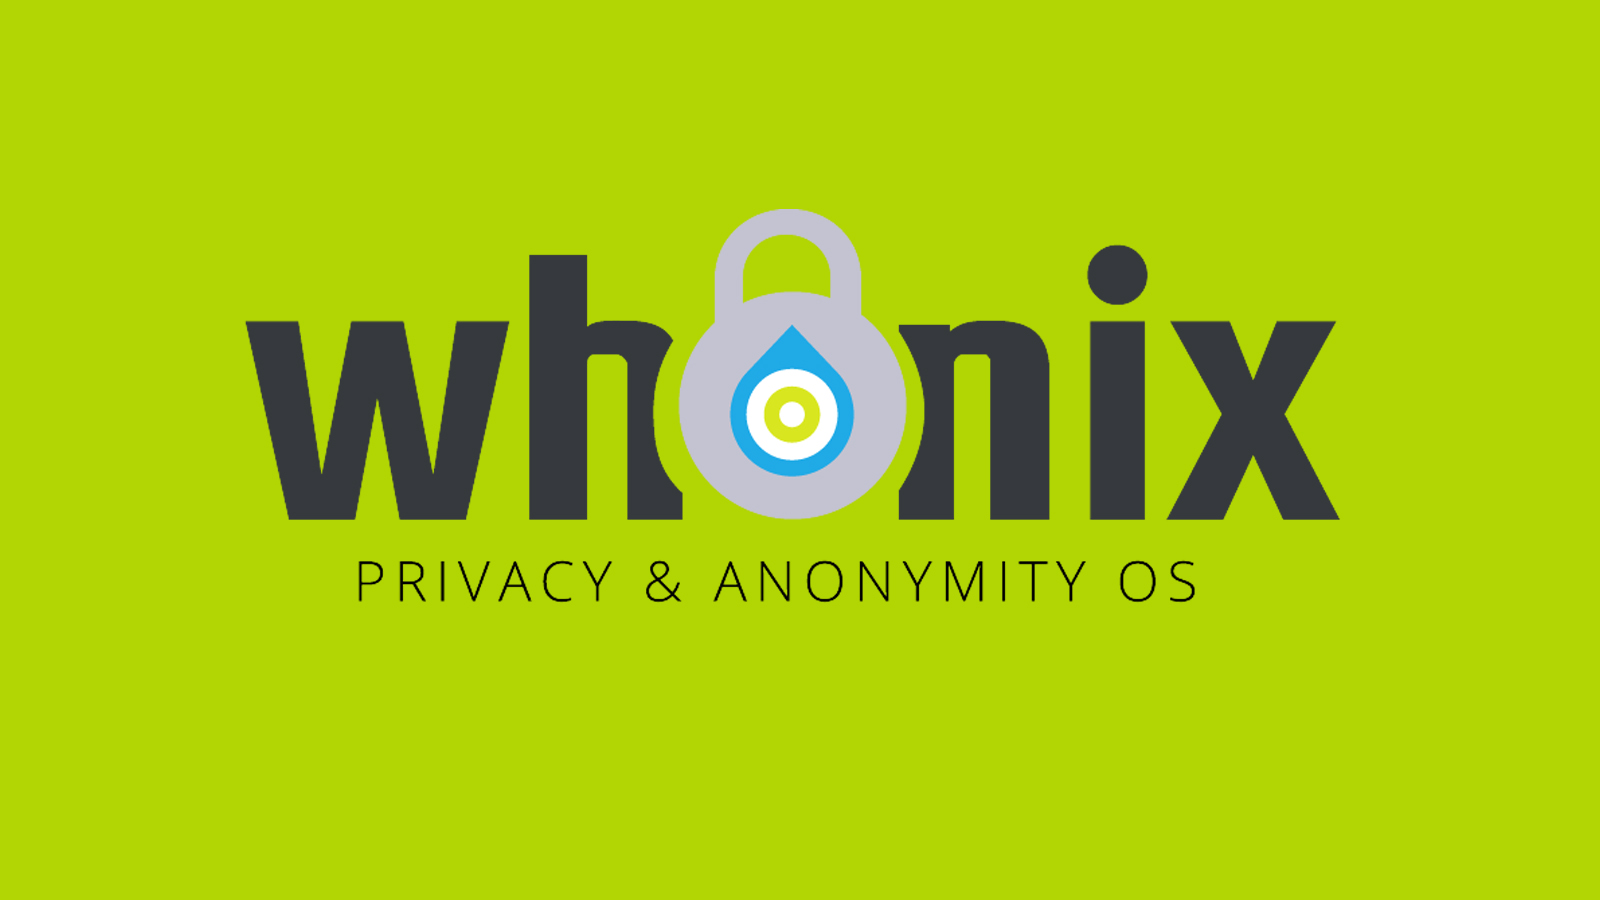 Whonix - An Operating System Focused On Anonymity, Privacy and Security